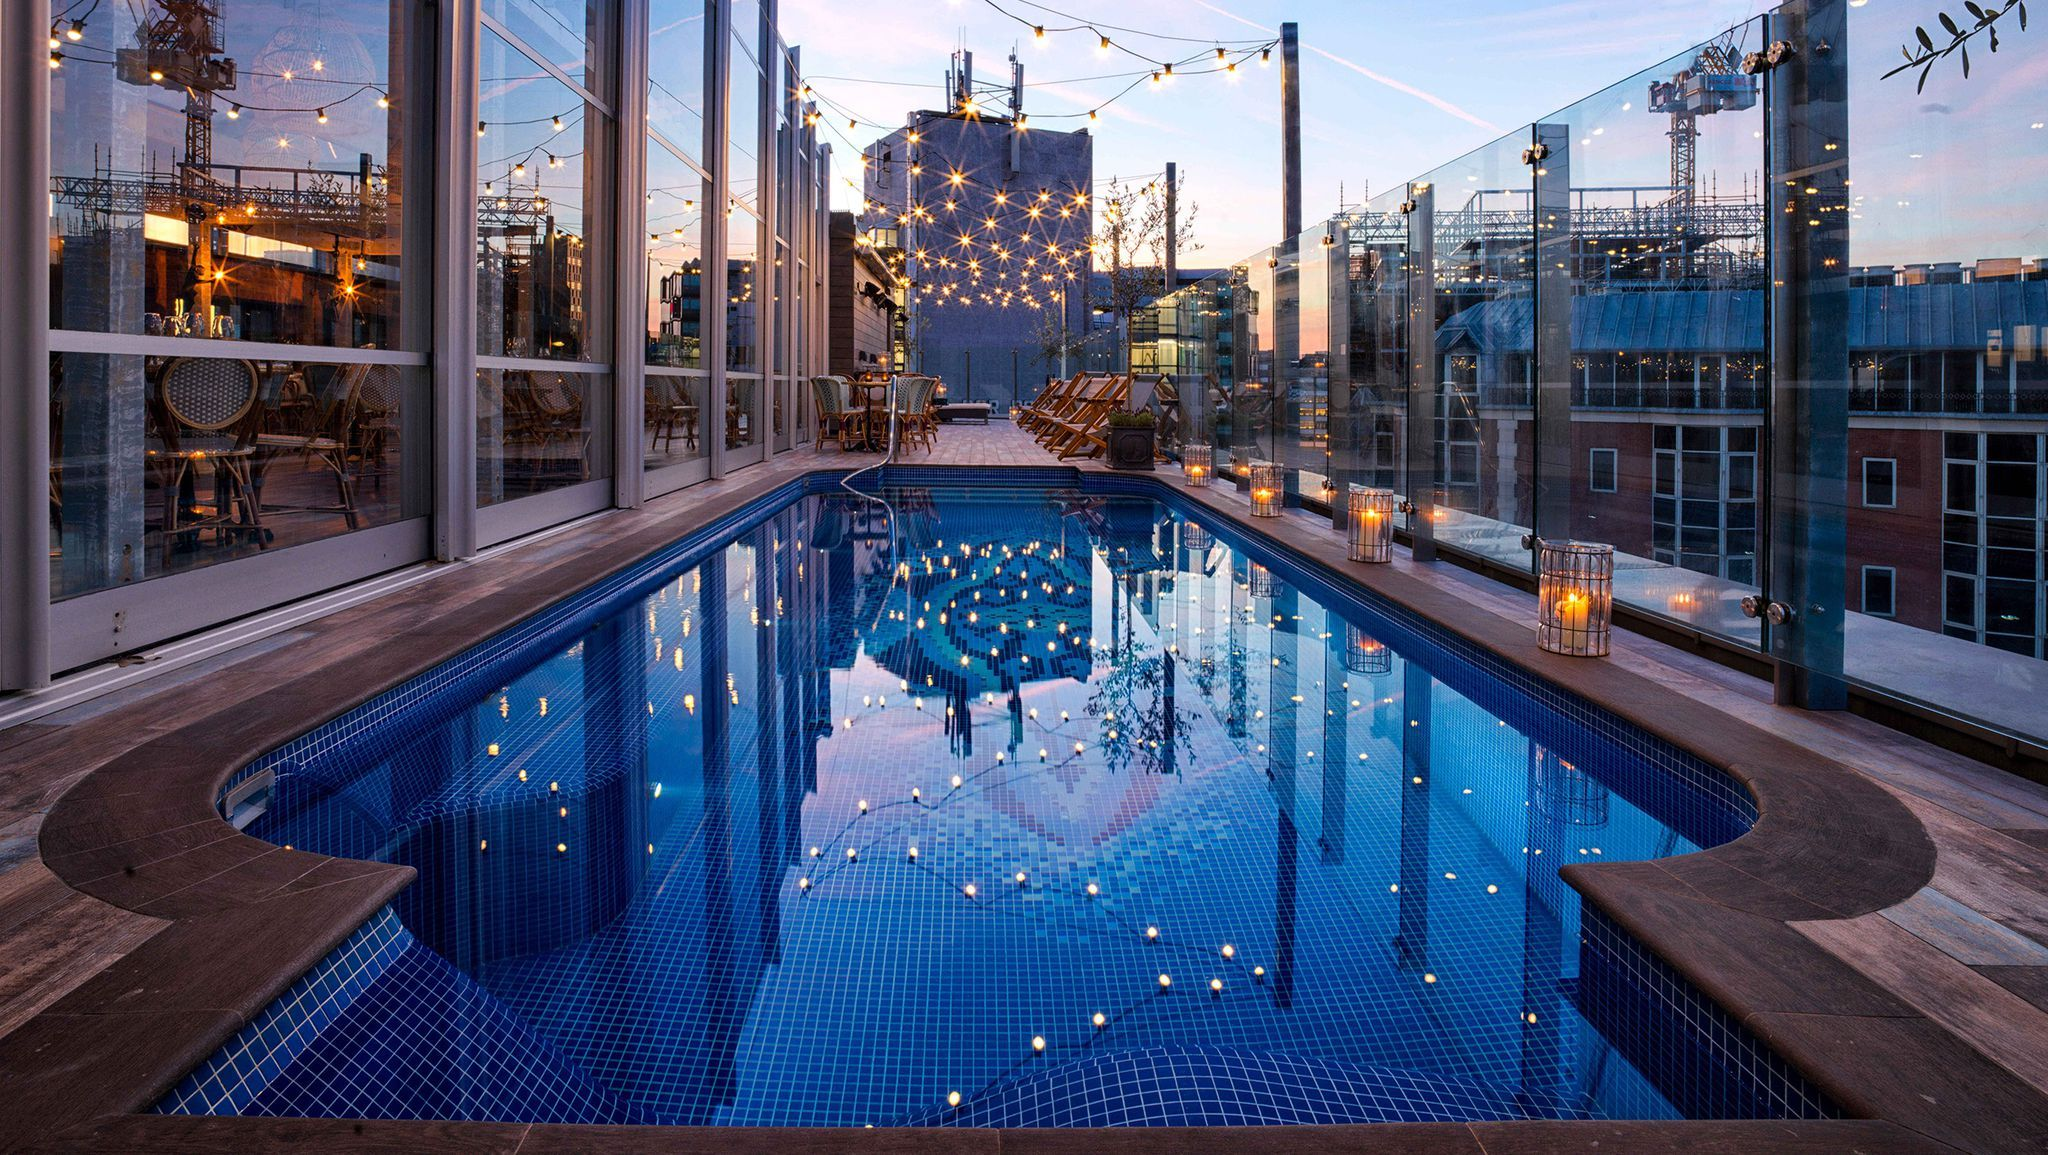 The 10 Best London Hotels With Pools For A Summer Stay In The Capital London Hotels Hotel Pool Shanghai Hotels